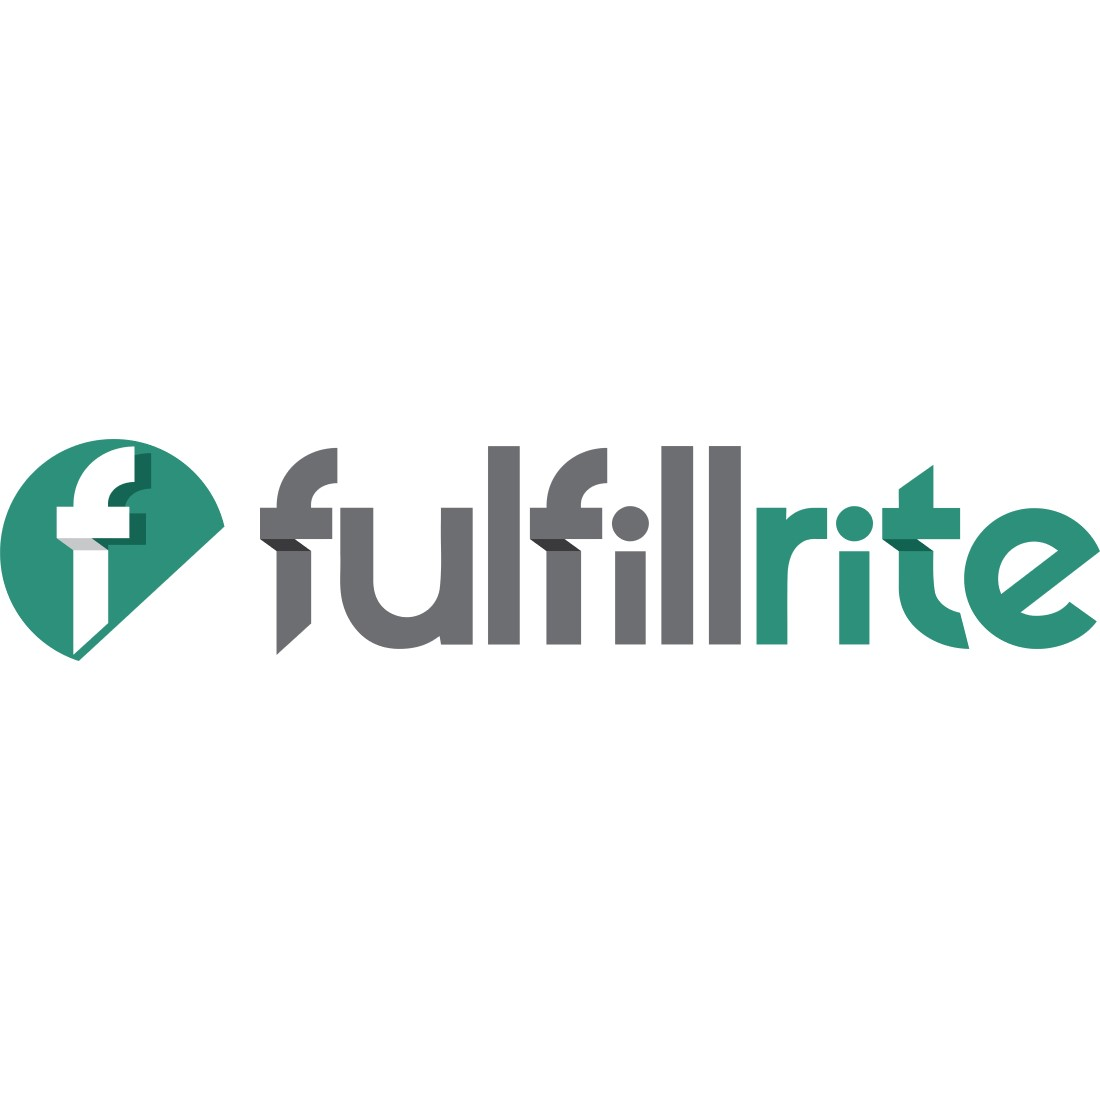 Fulfillrite Symbol with Wordmark Color 1 (Original) (6) (1)-1